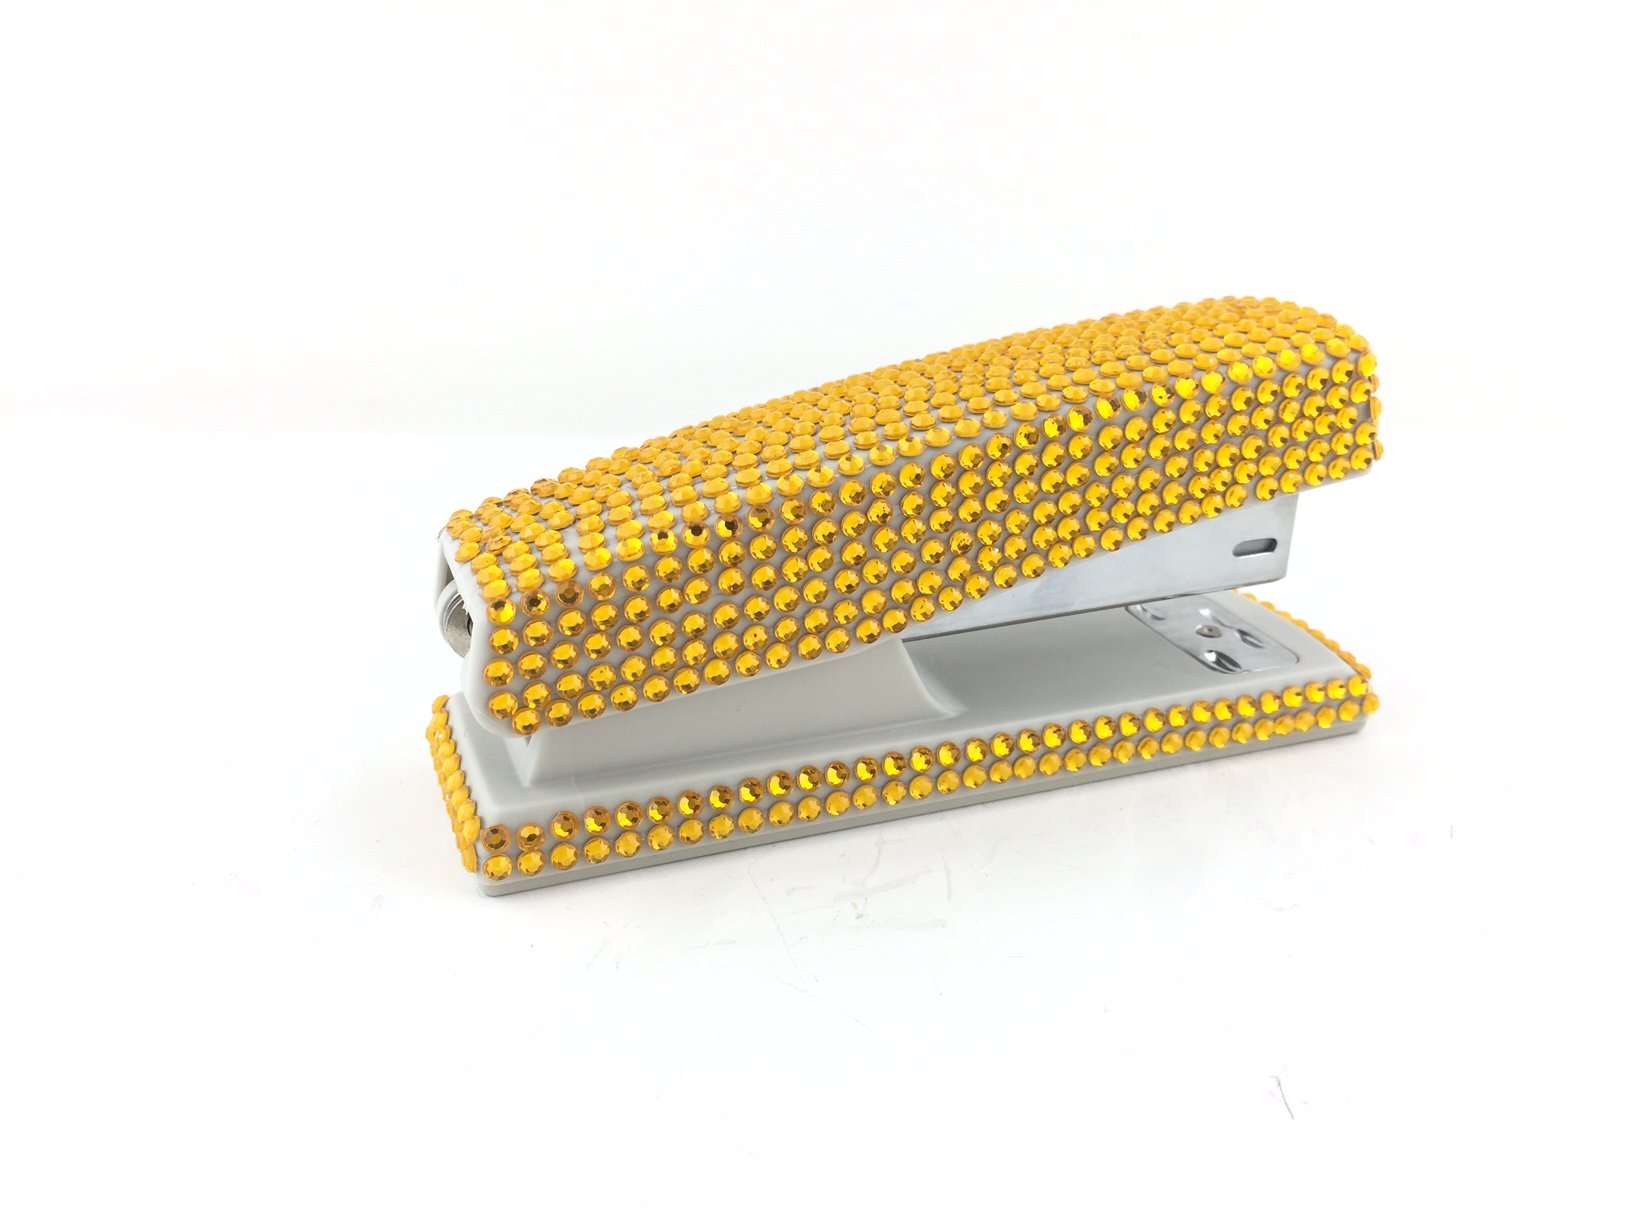 blingustyle Sparkly Diamante Crystal Stapler For Office/Home Gold by blingustyle (Image #4)